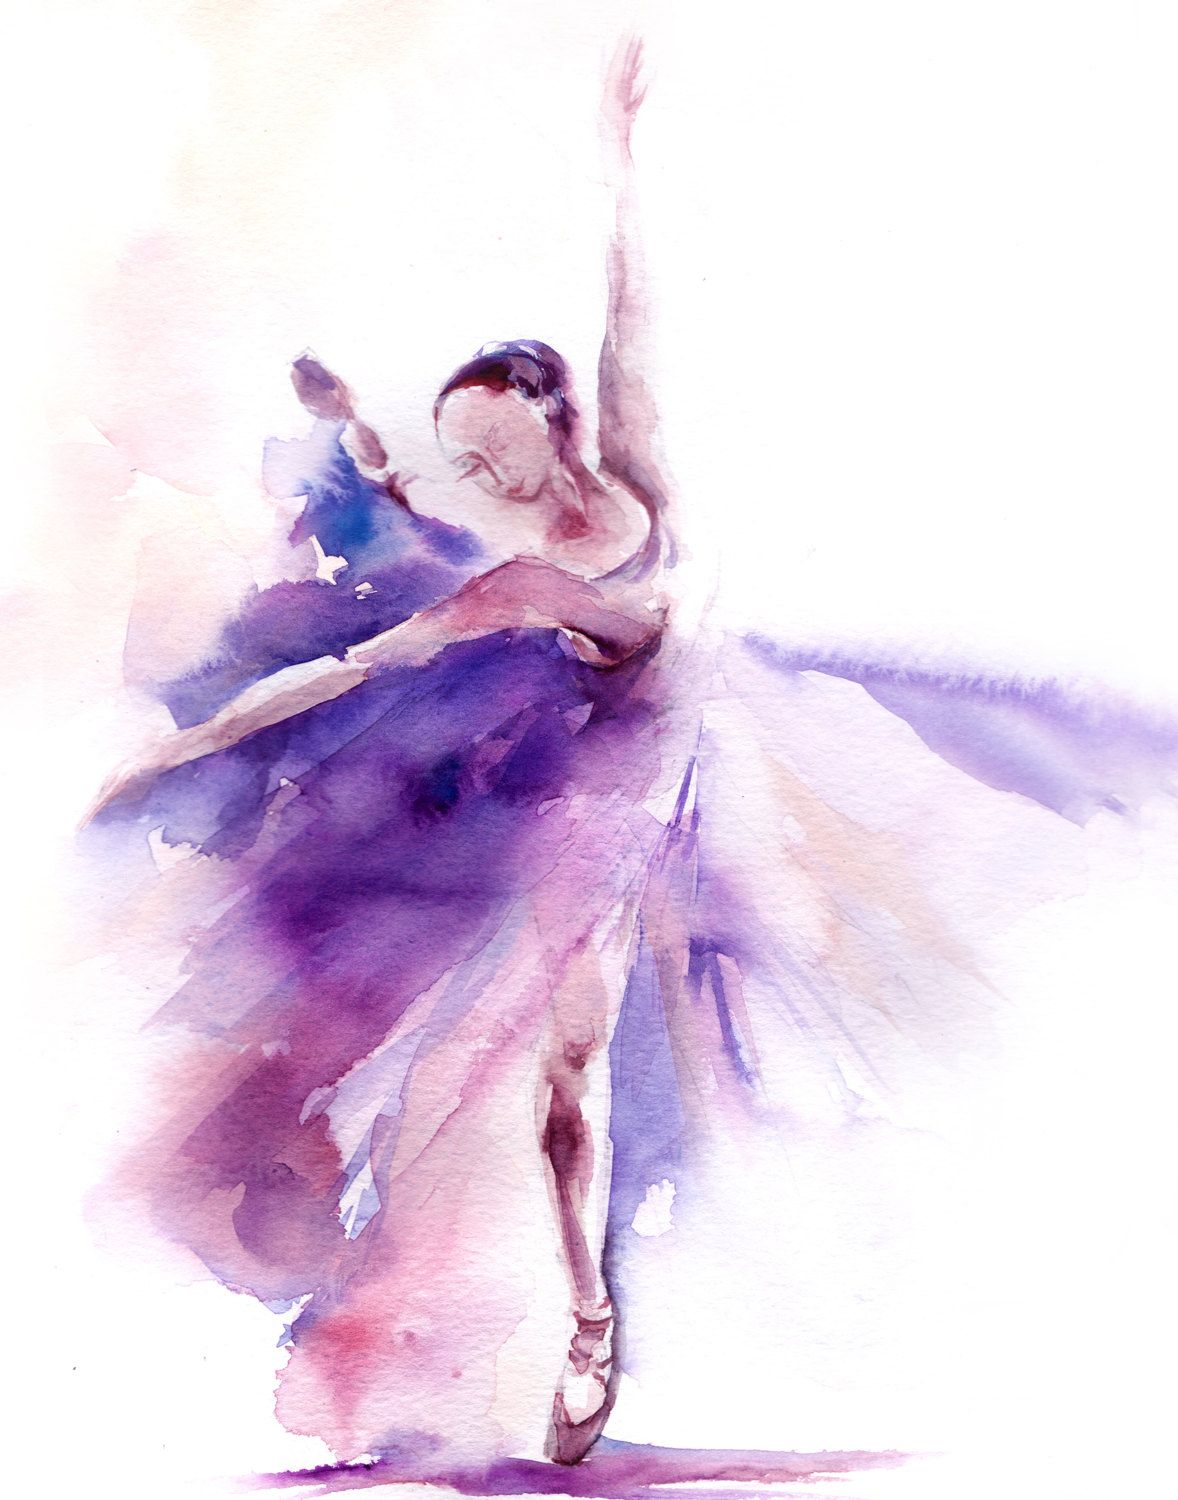 Abstract Painting Of Girl Dancing Watercolor Landcolor Skycolor Ballerina Watercolor